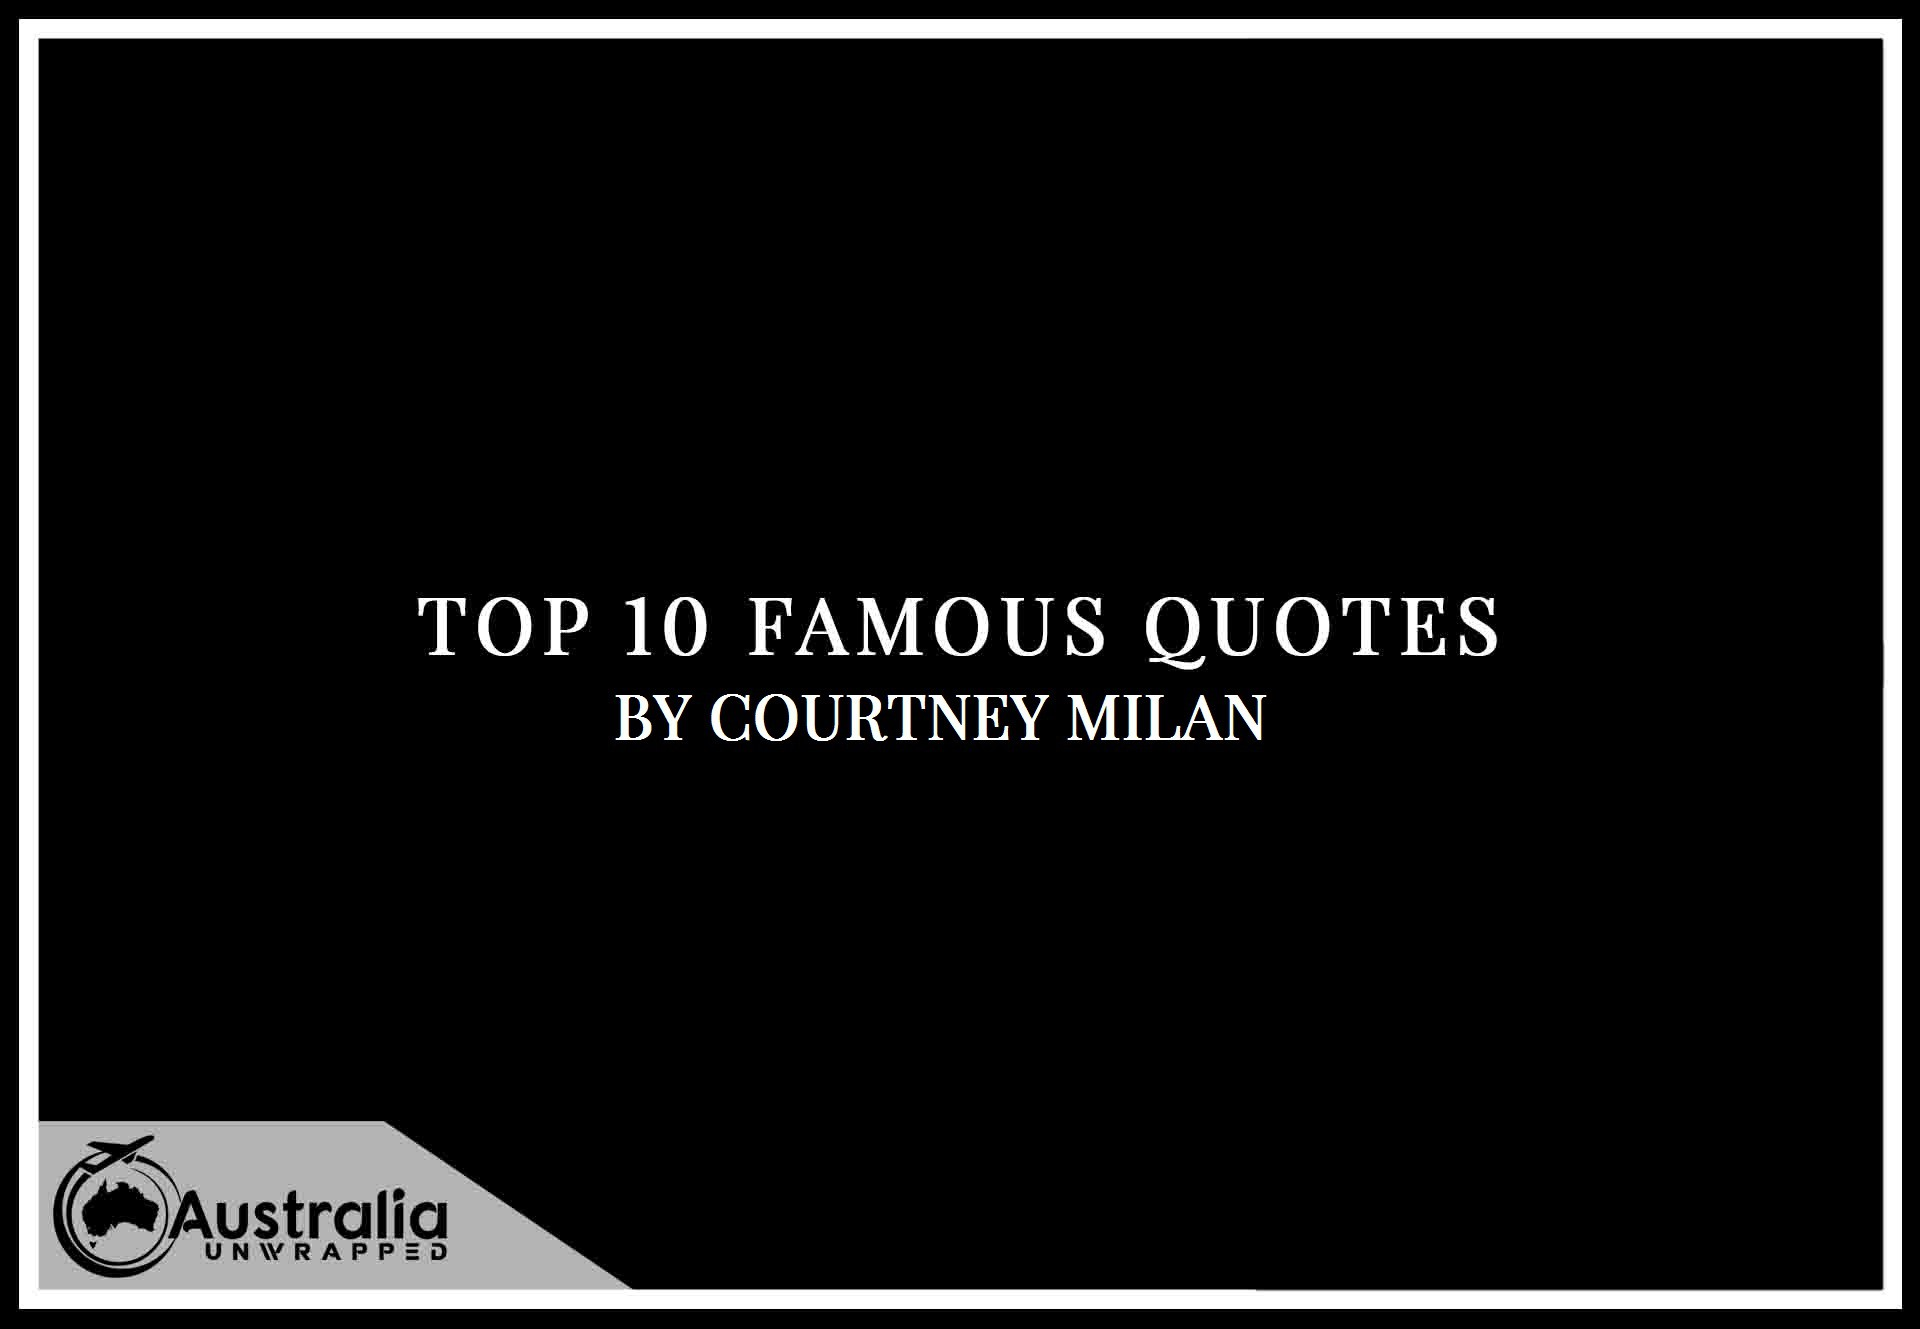 Courtney Milan's Top 10 Popular and Famous Quotes